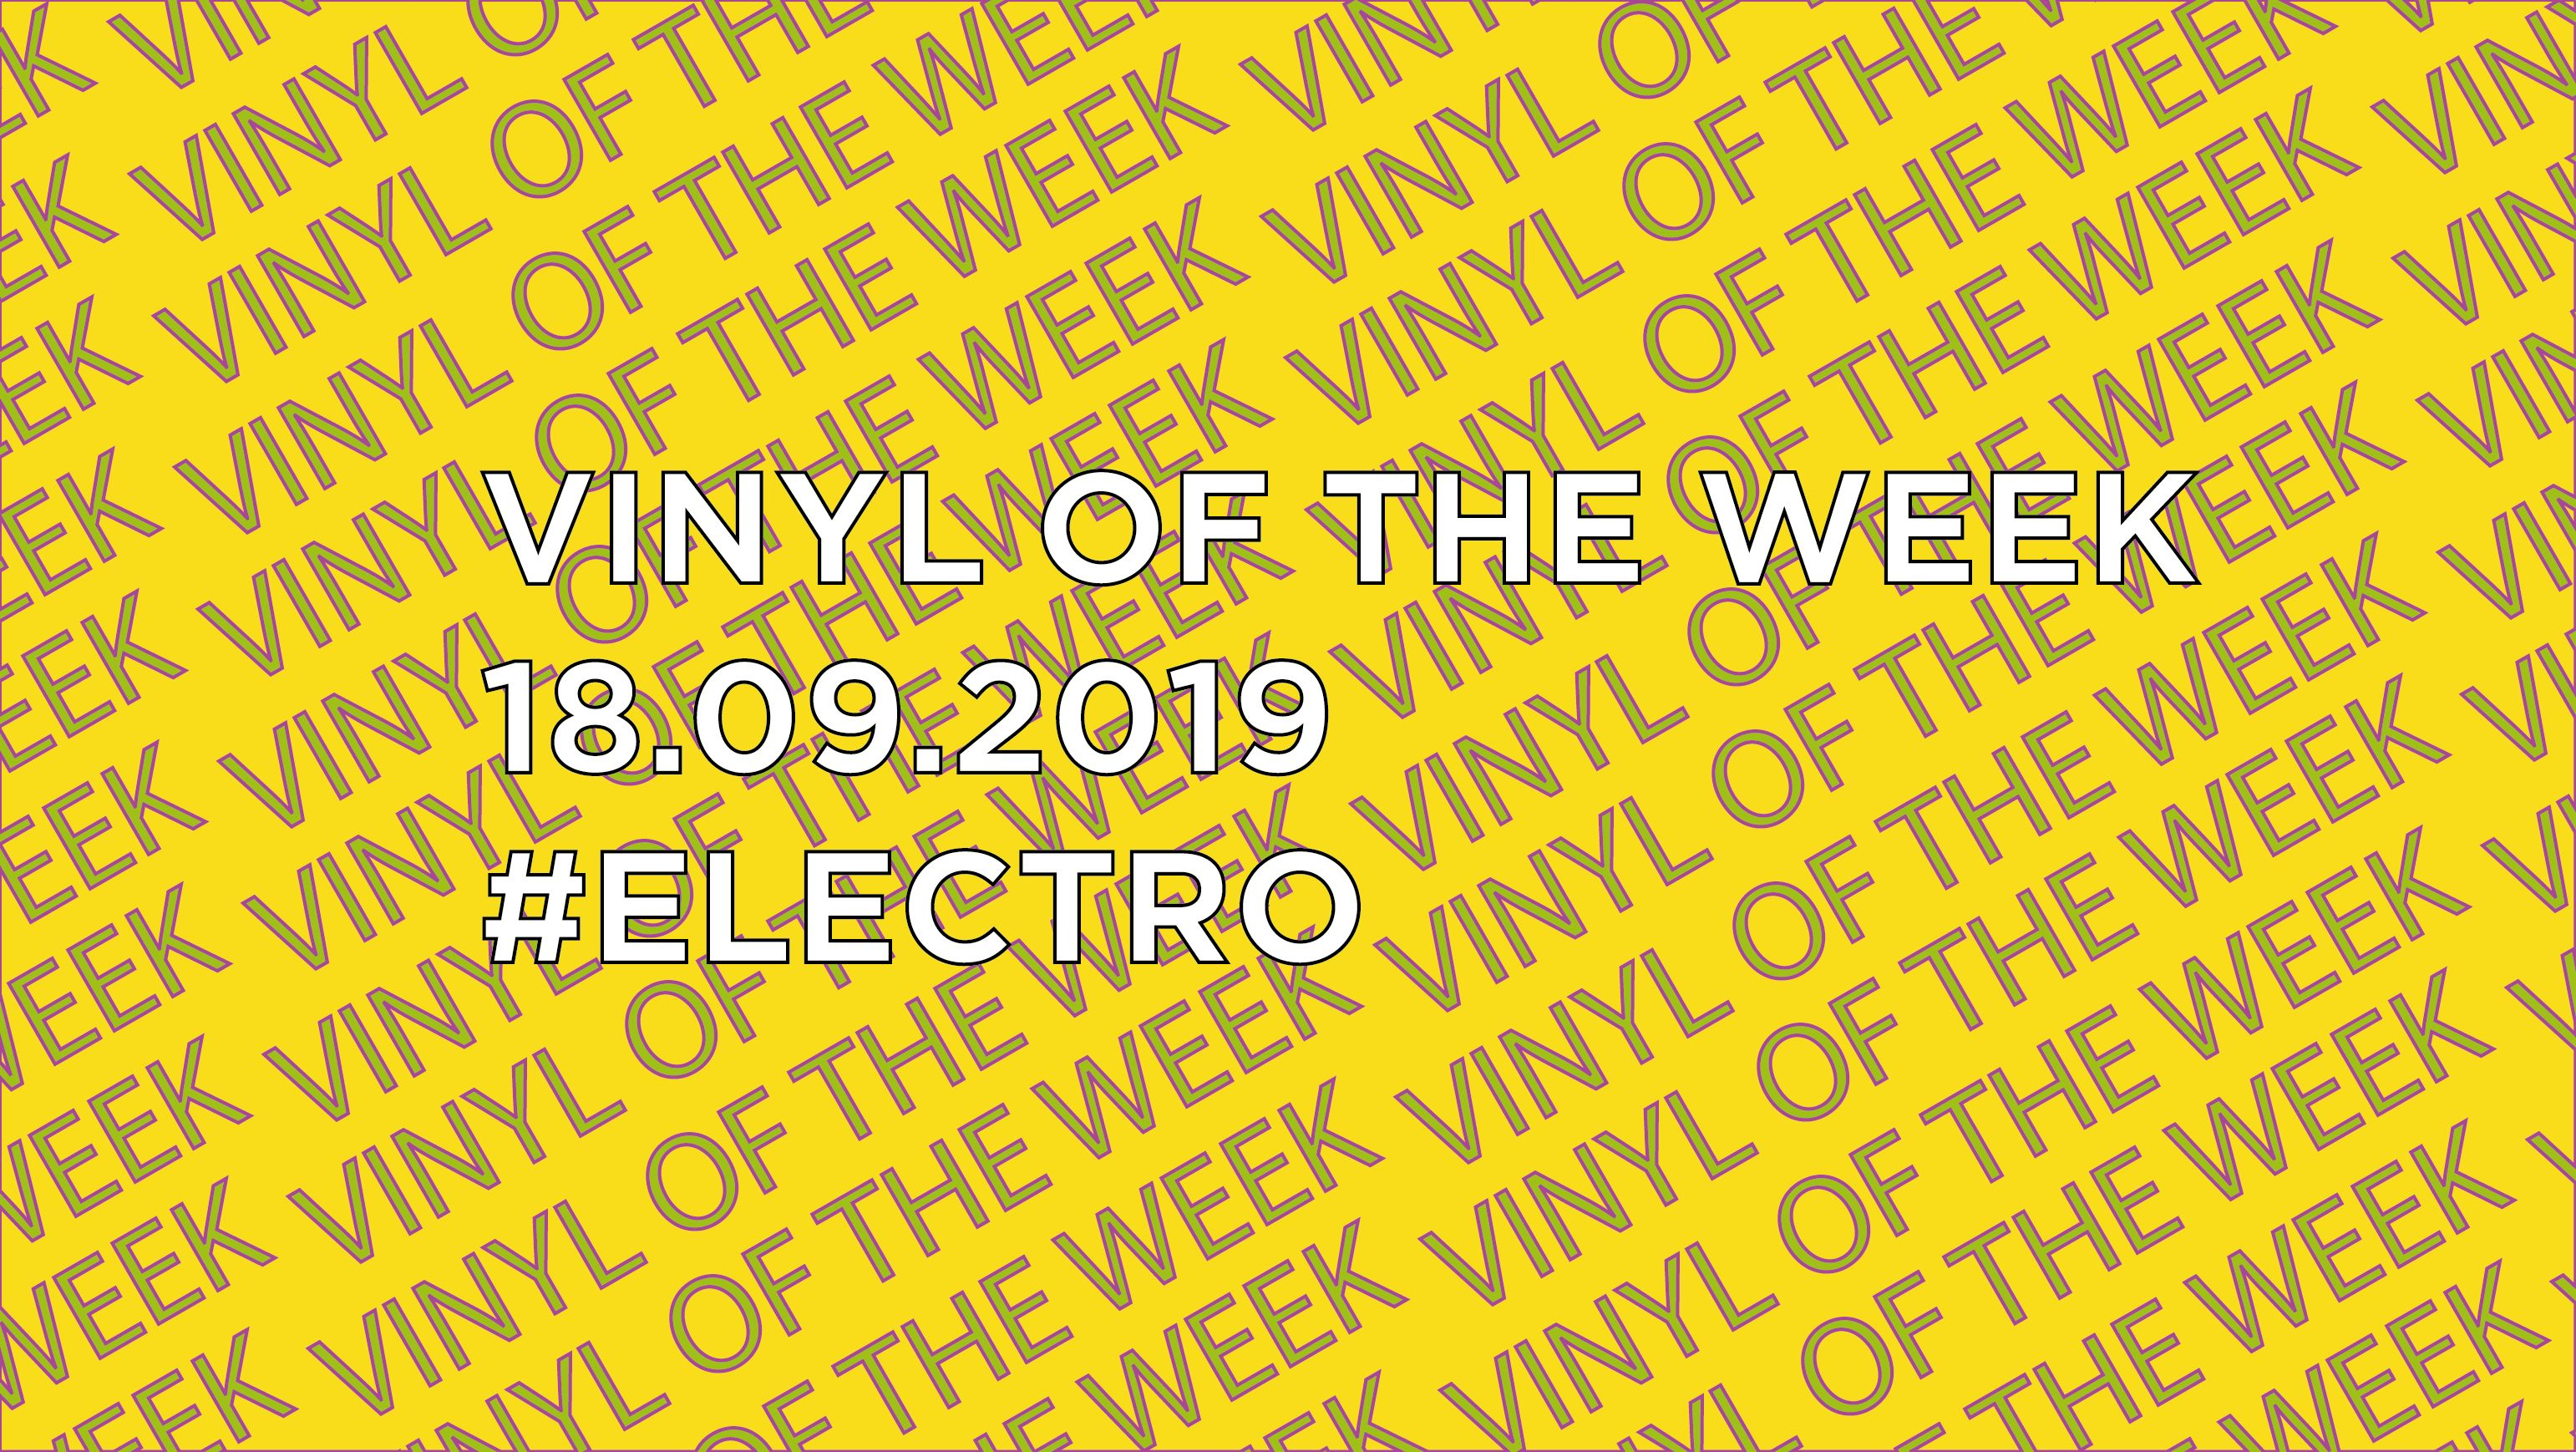 Vinyl records of the Week 09.18.2019